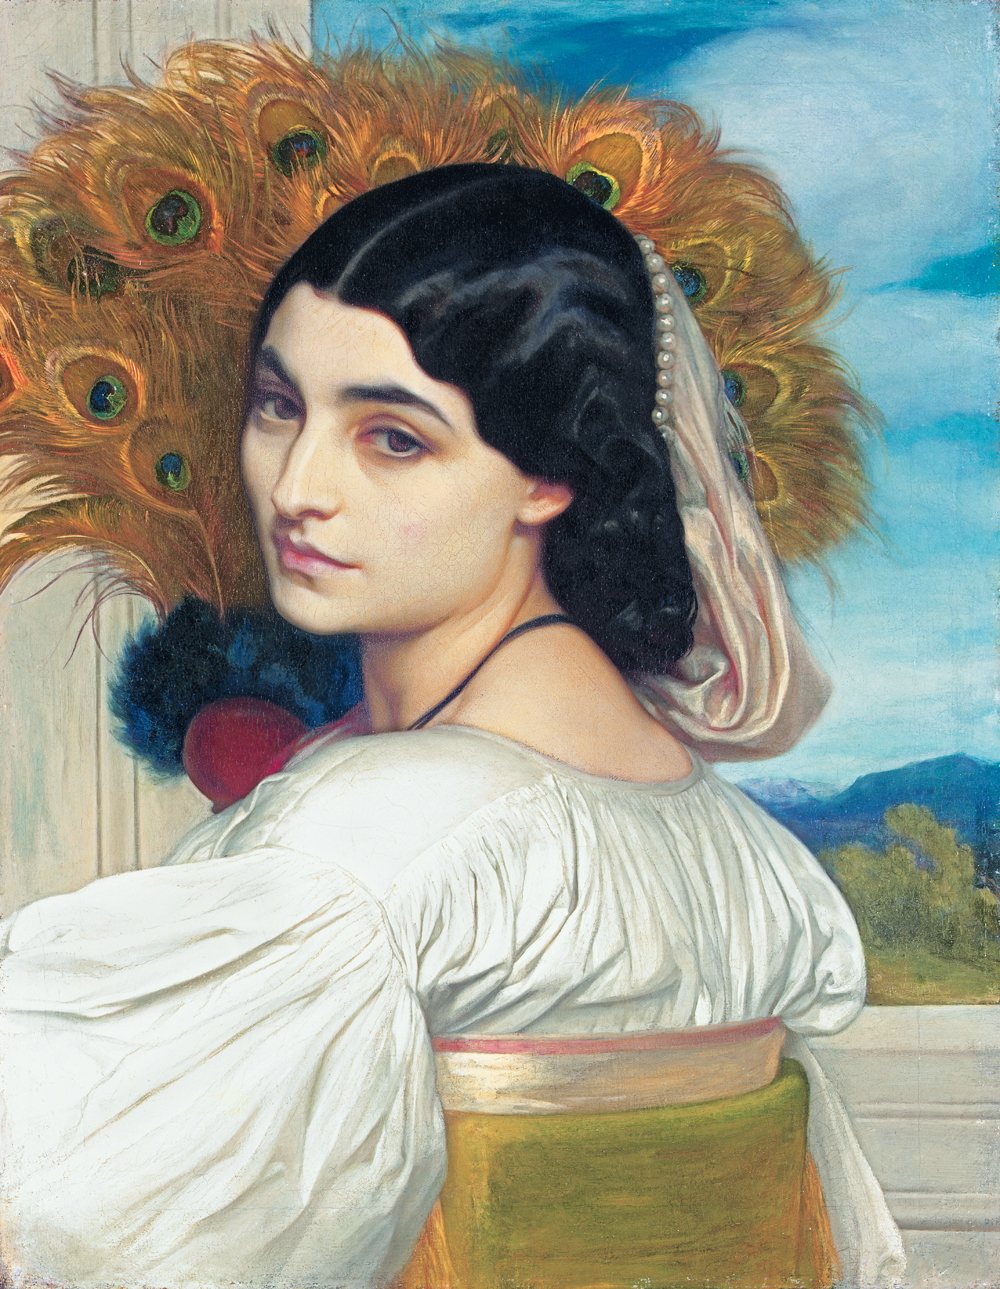 'Pavonia', Frederic Leighton, 1858-9. Private collection © Christie's